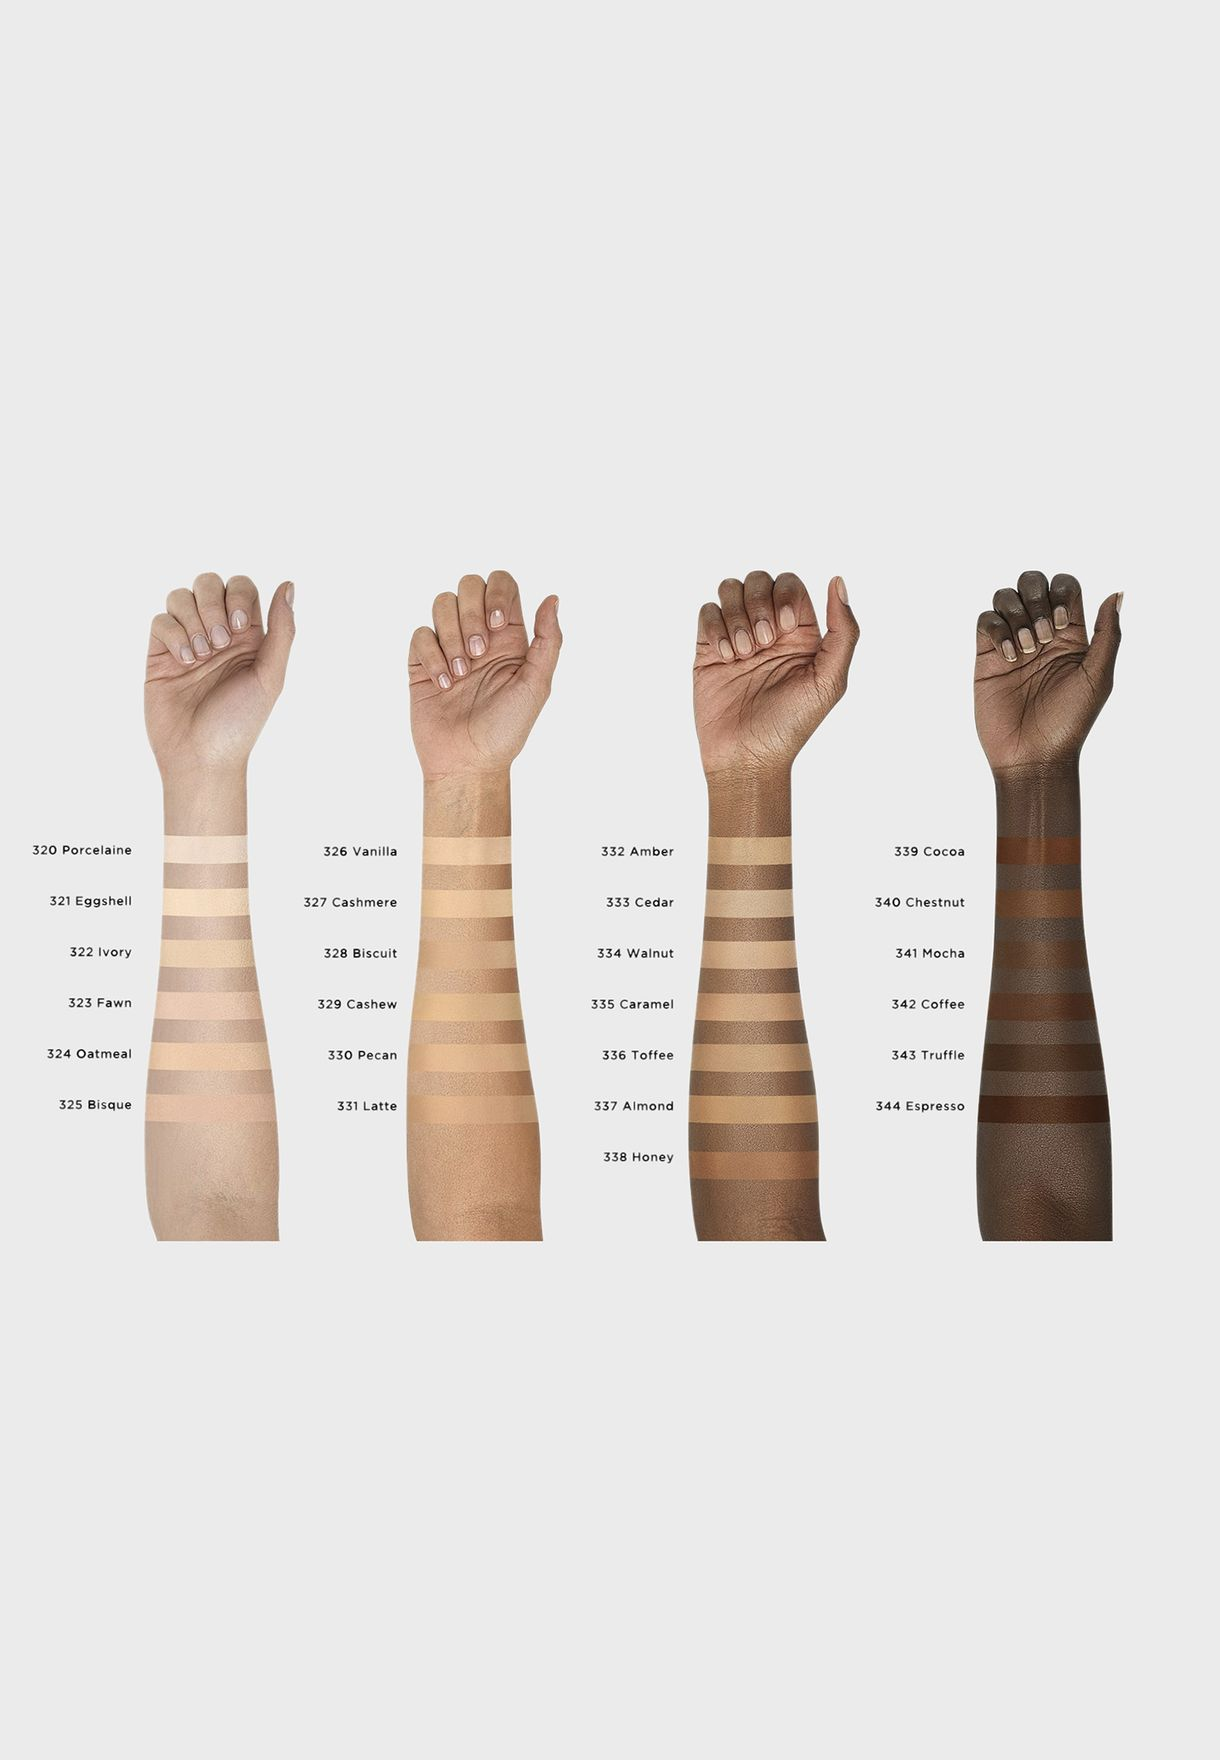 Infallible Full Coverage Concealer 328 Biscuit